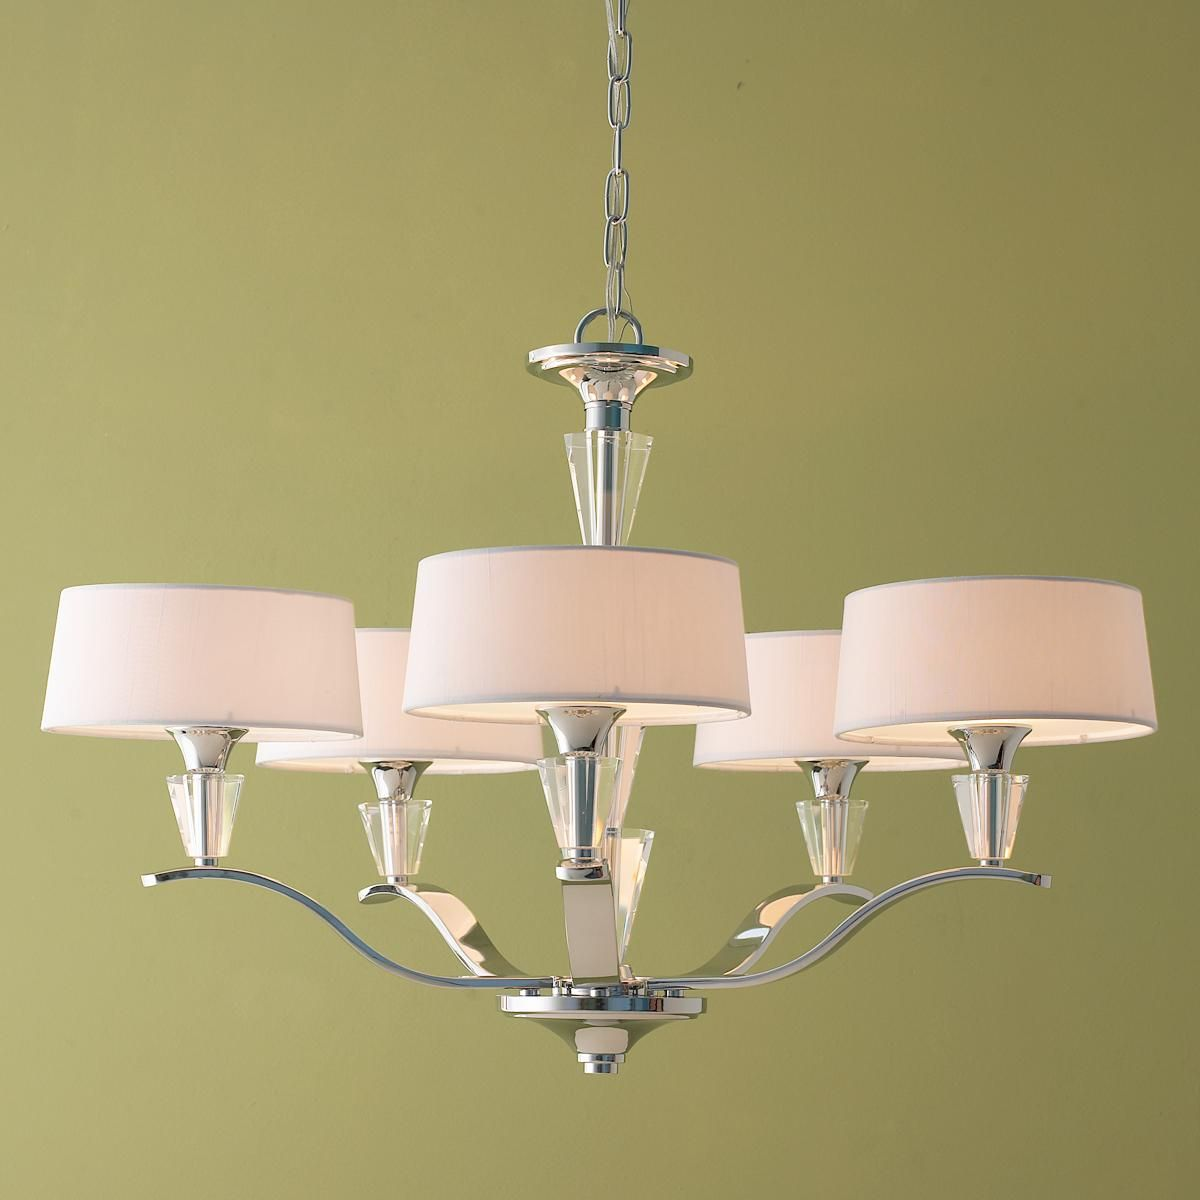 Maybe For Diningroom? //Modern Tiered Crystal And Chrome